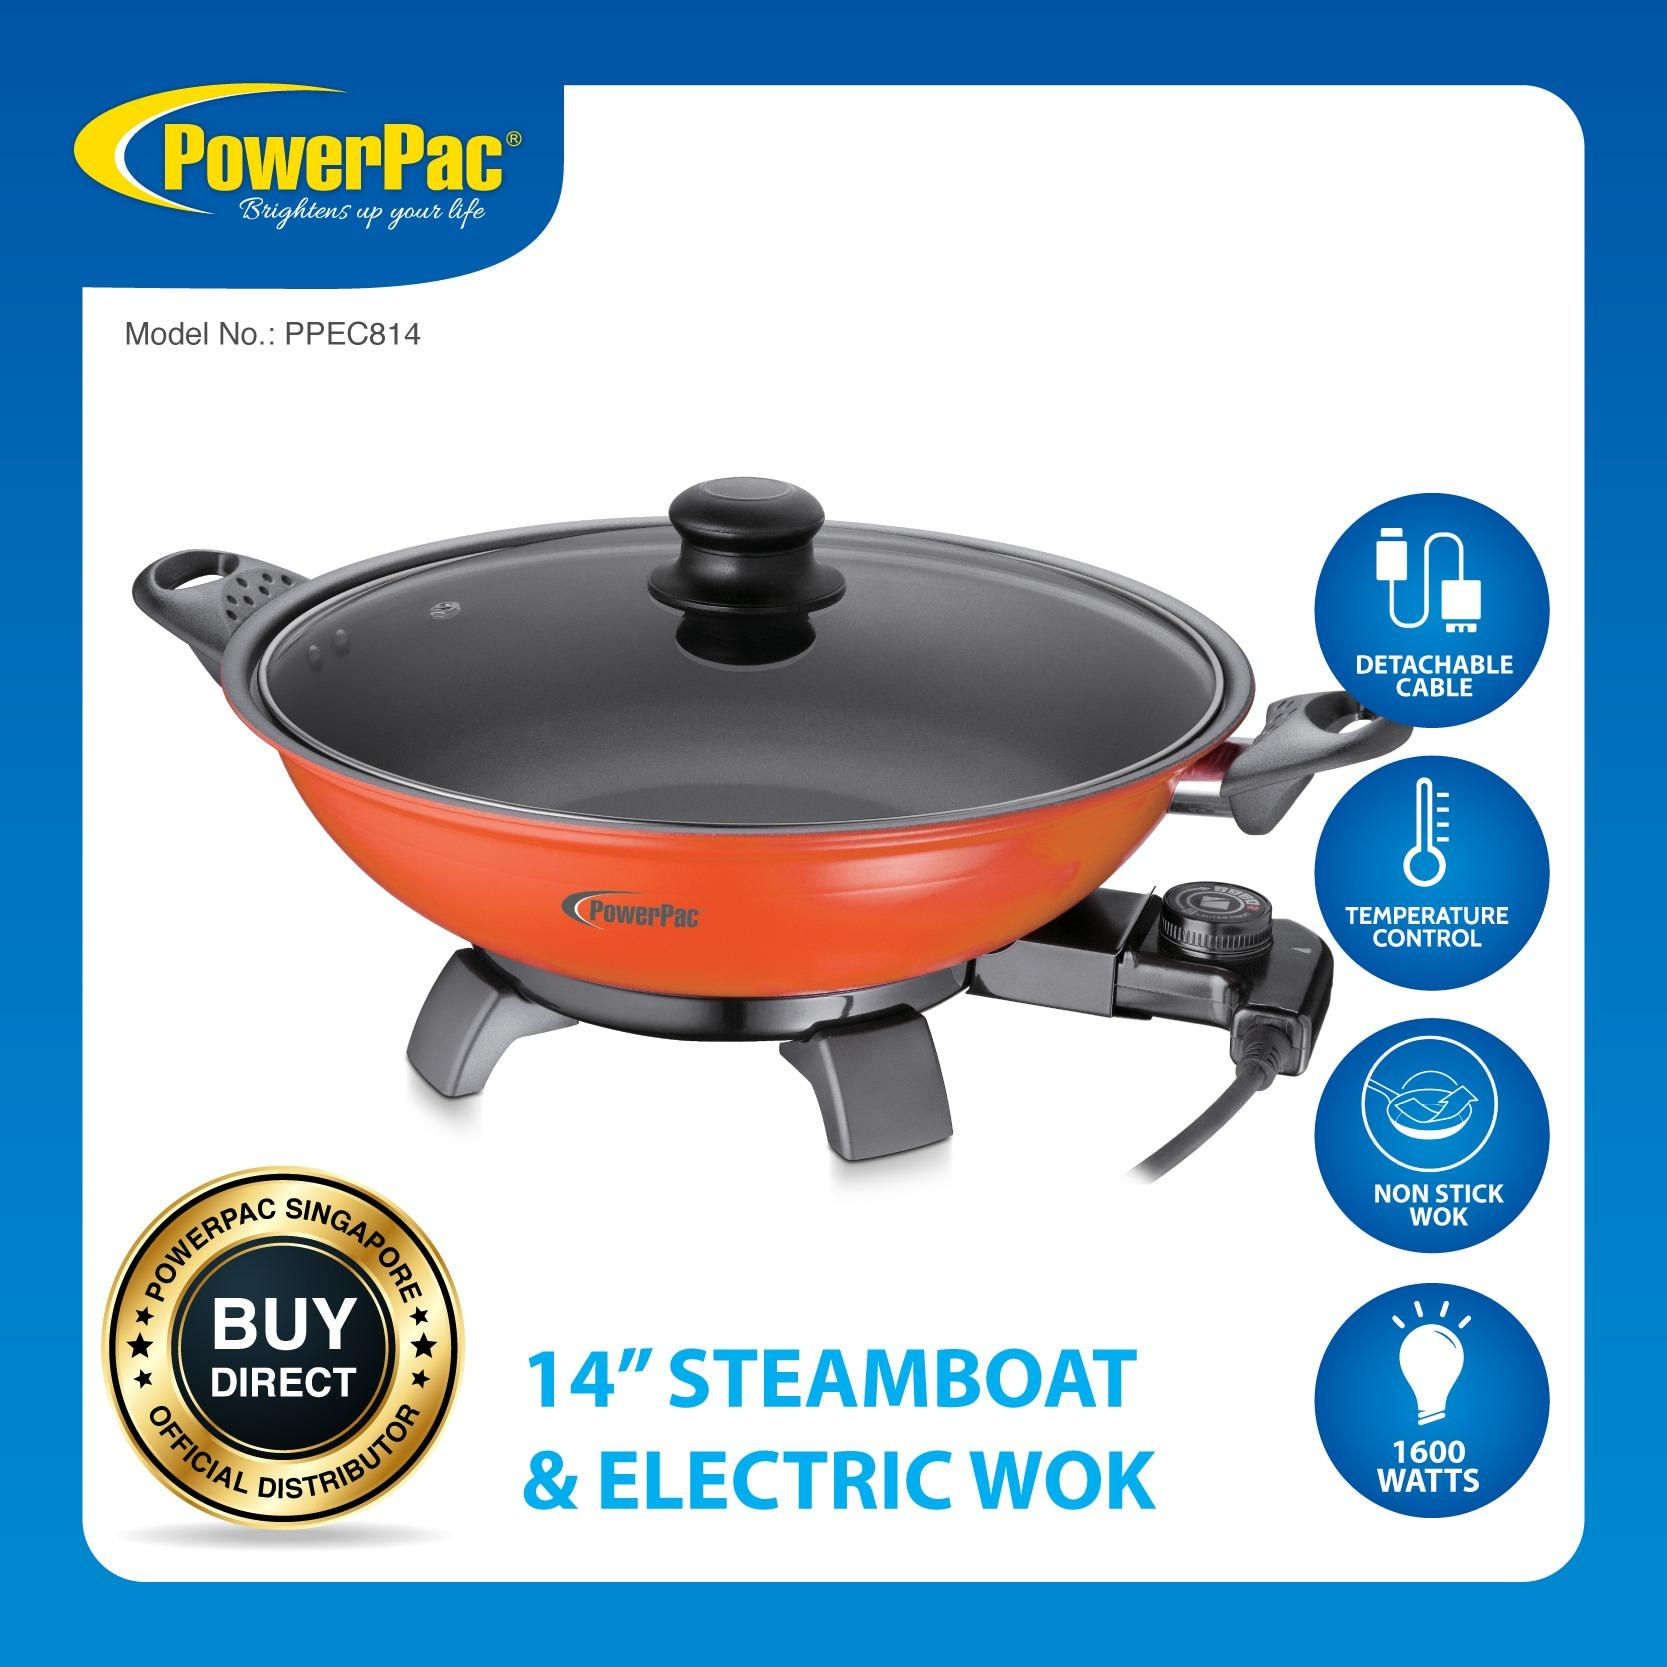 Sale Powerpac 14 Inch Electric Wok Steamboat Ppec814 Powerpac On Singapore